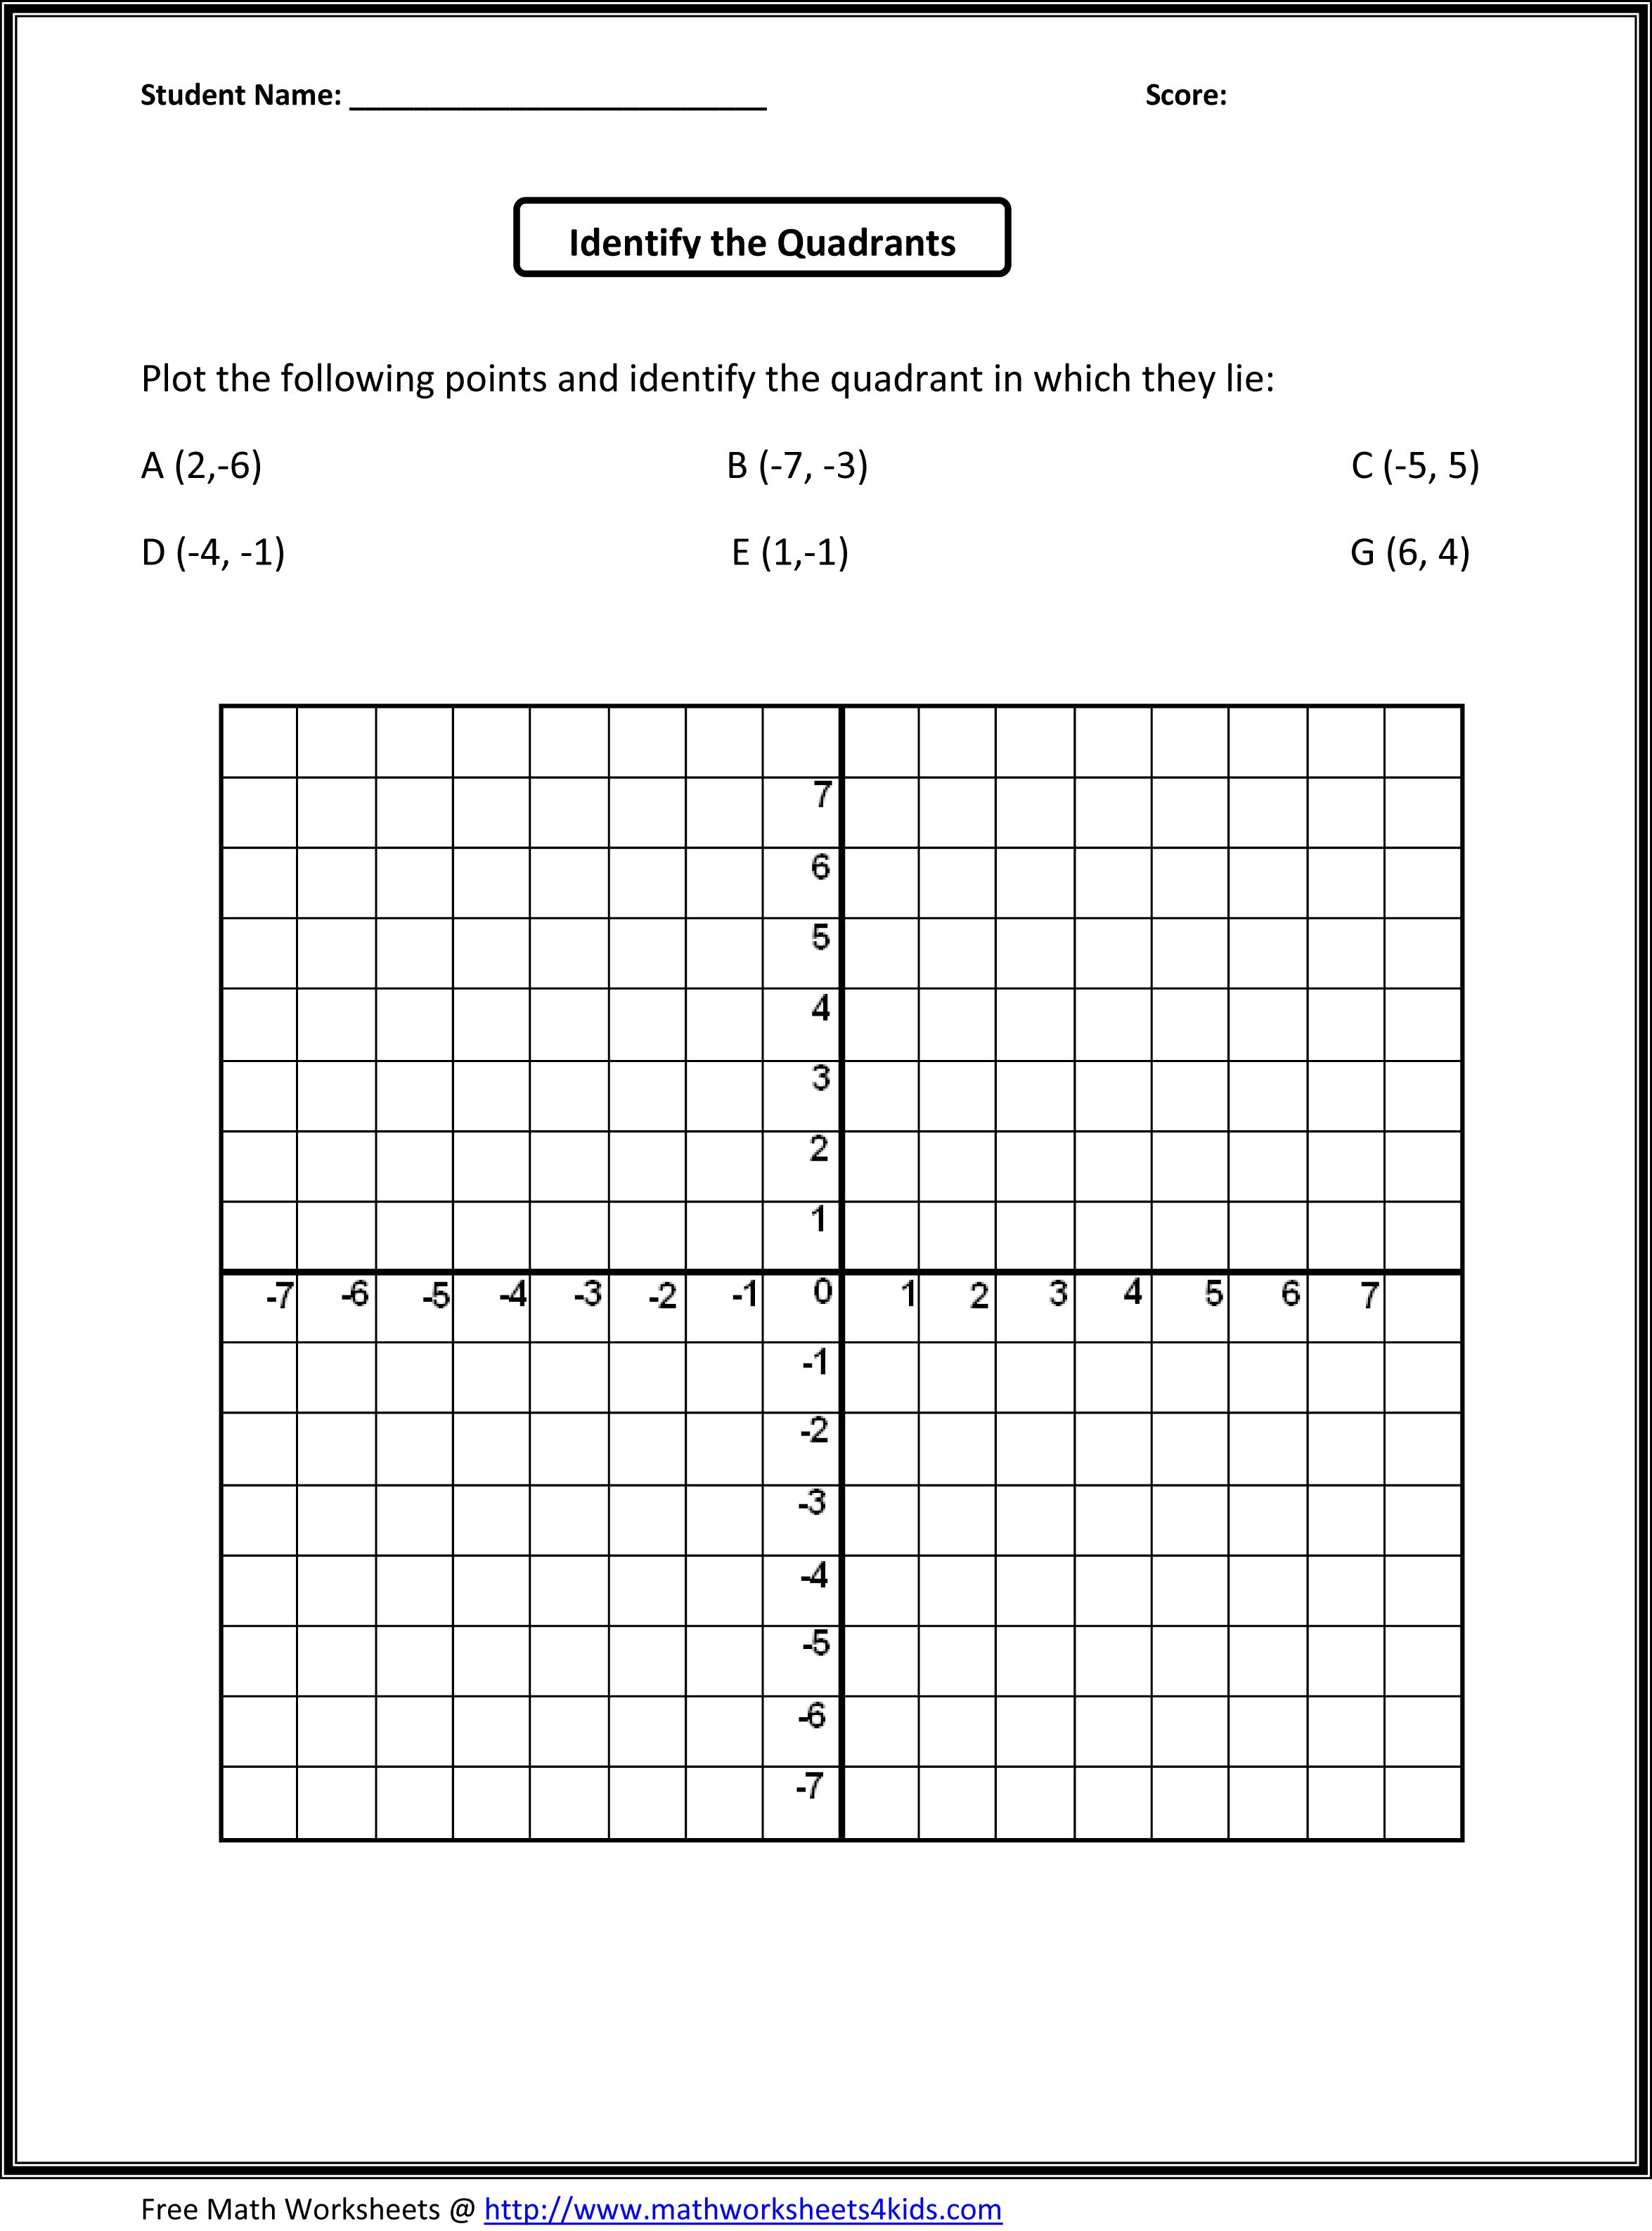 math worksheet : 1000 images about madi math on pinterest  5th grade math  : 5th Grade Math Worksheets Free